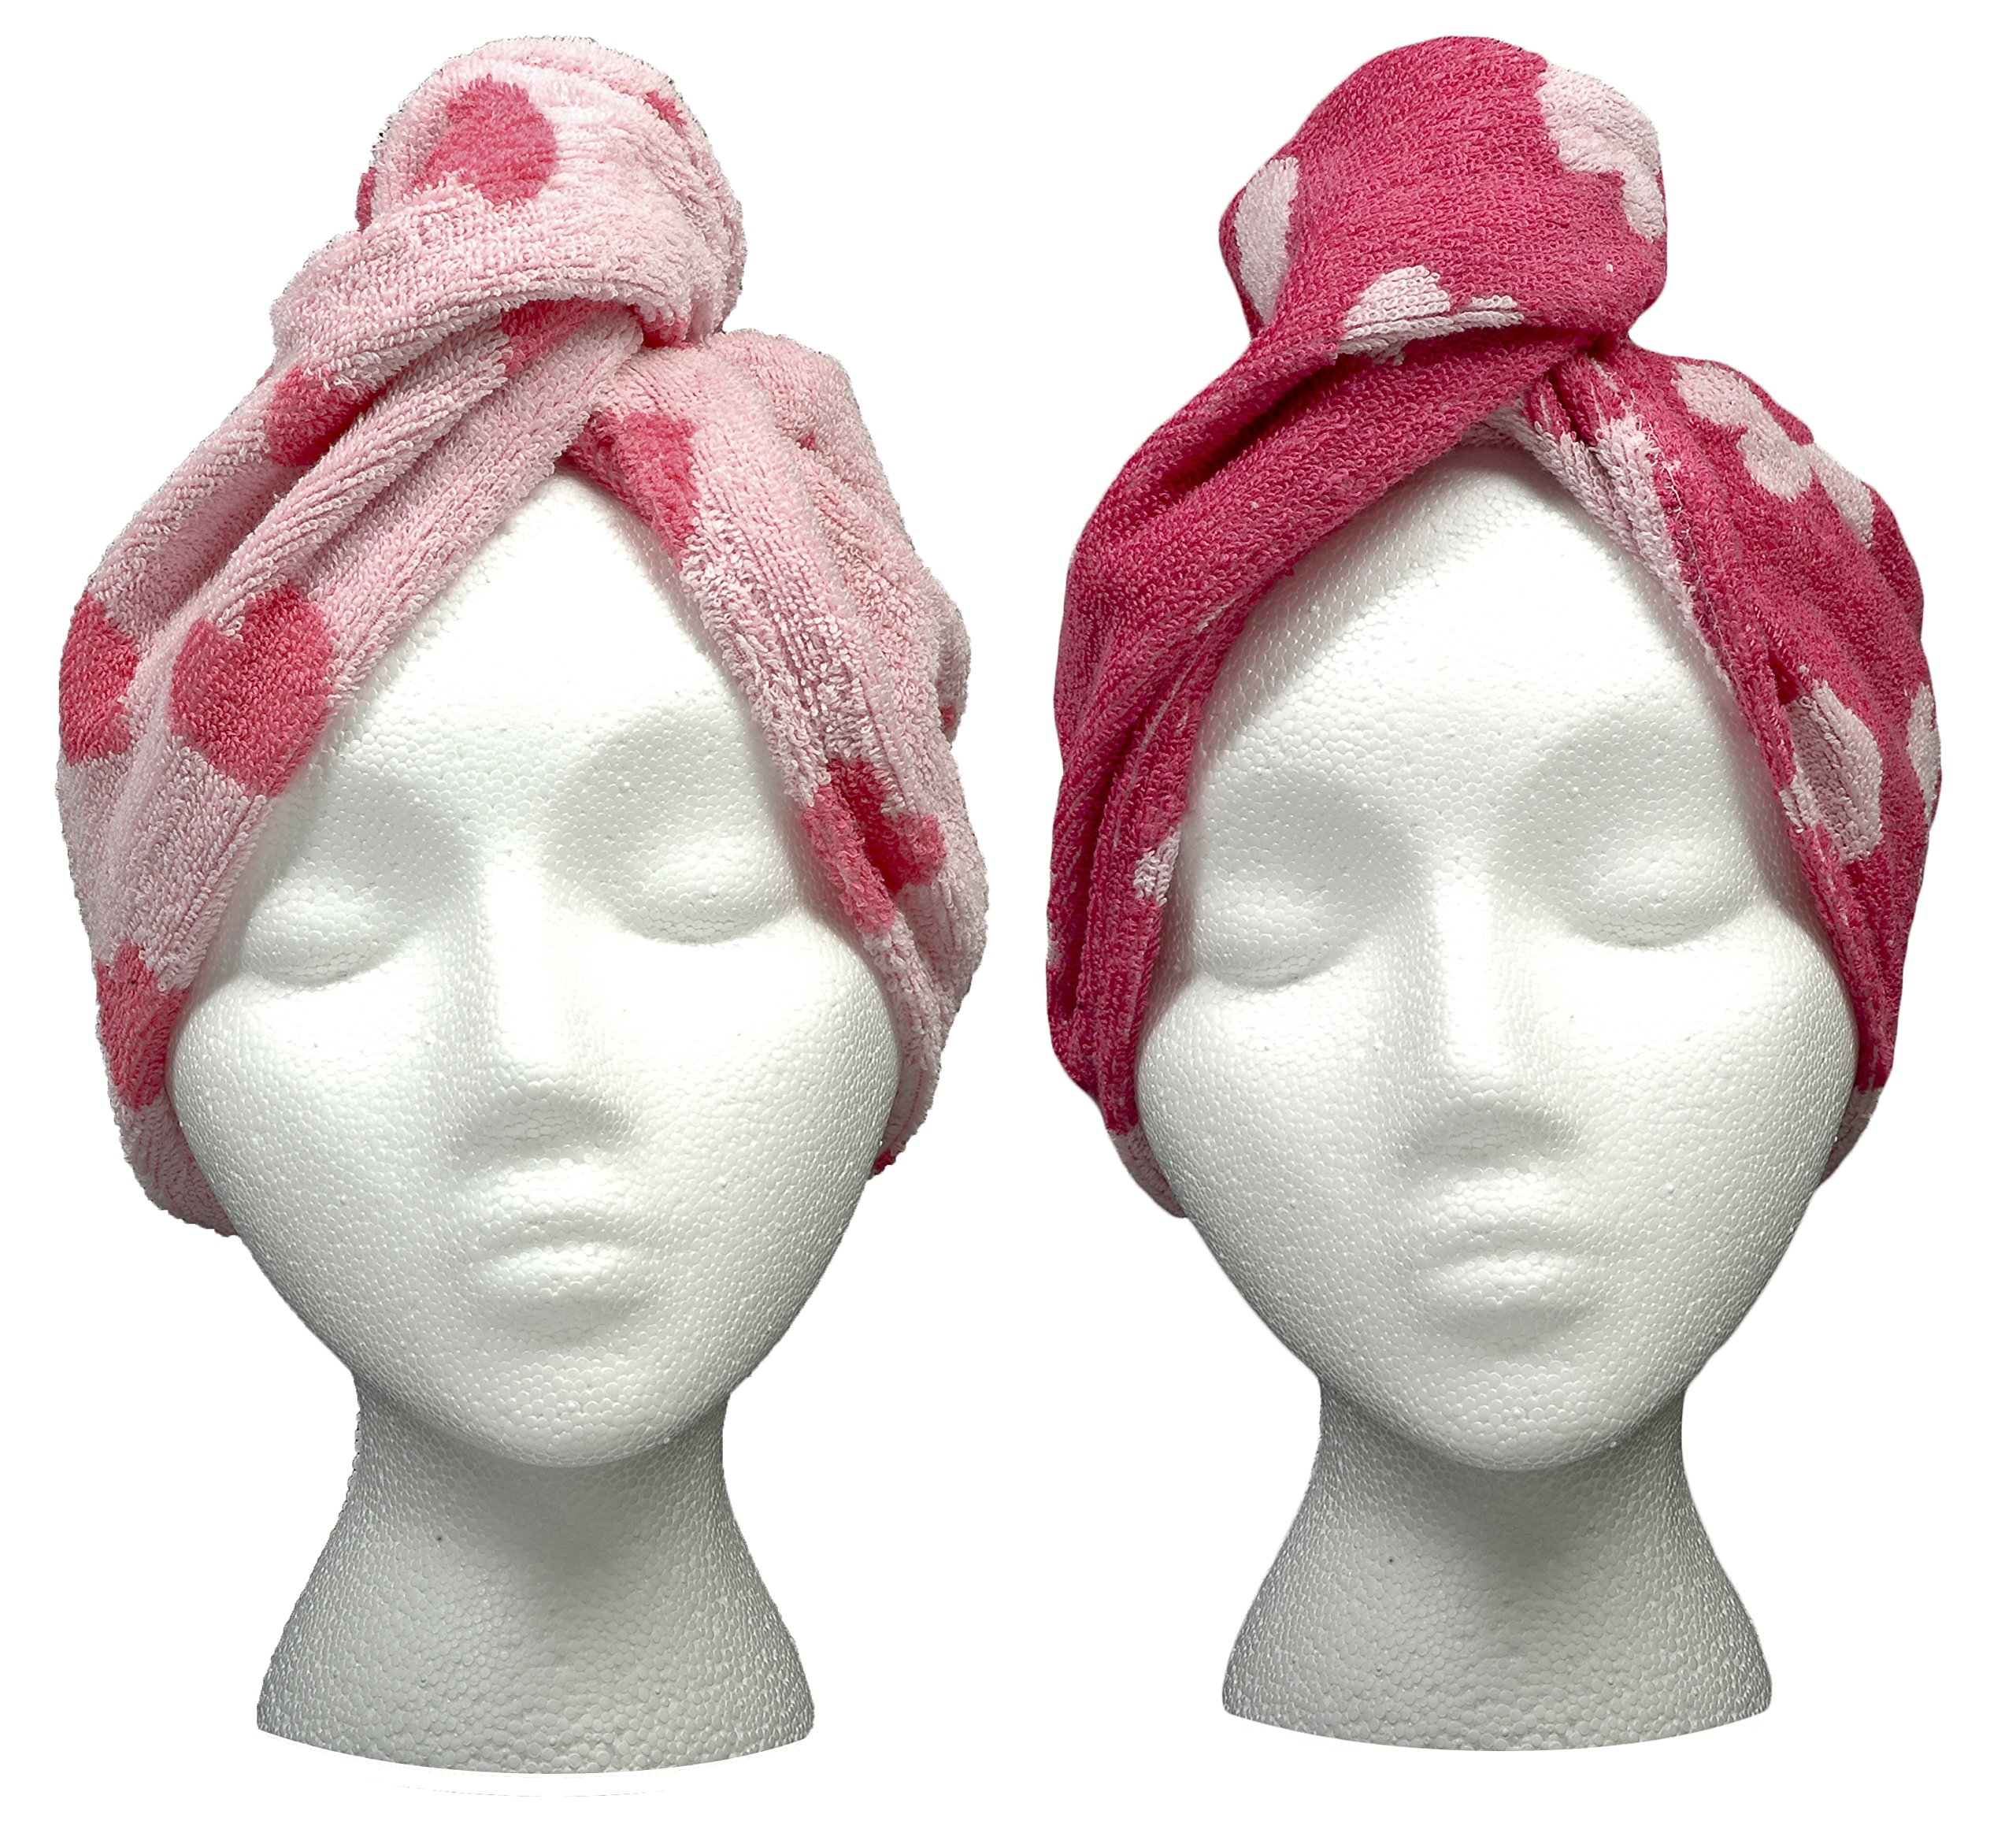 Turbie Twist Cotton Super Absorbent Hair Towel (2 Pack) Pink Hearts by Turbie Twist (Image #1)